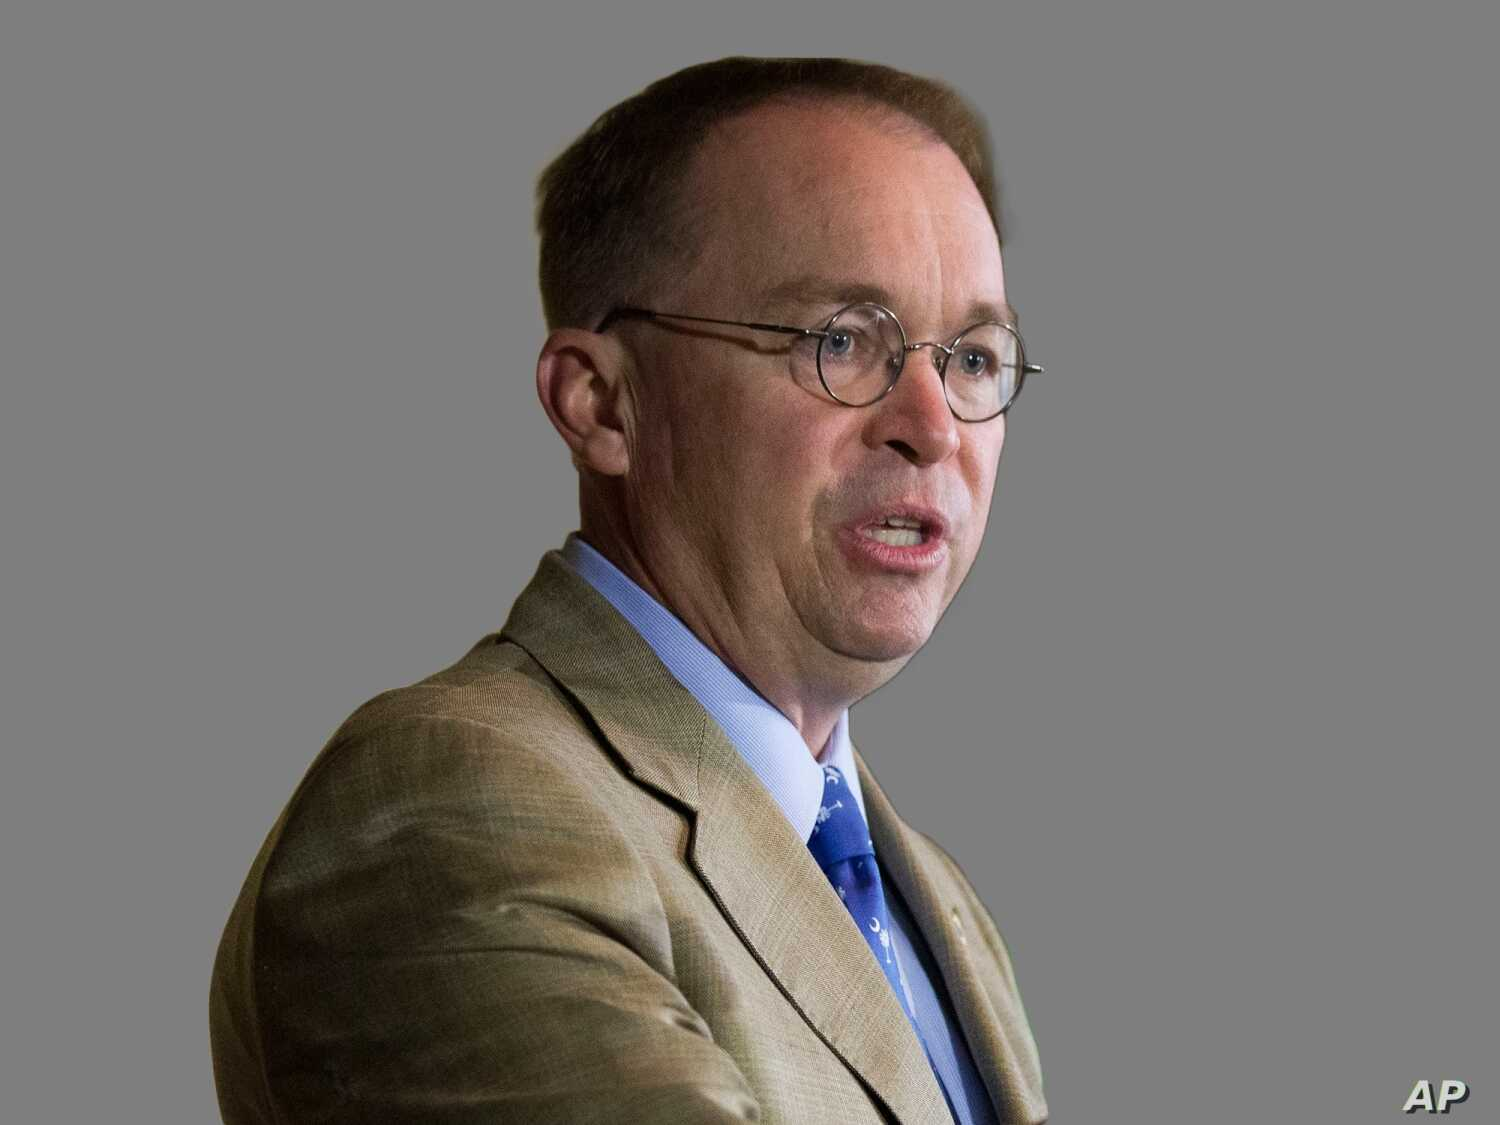 Mick Mulvaney, as Acting White House Chief of Staff,  graphic element on gray